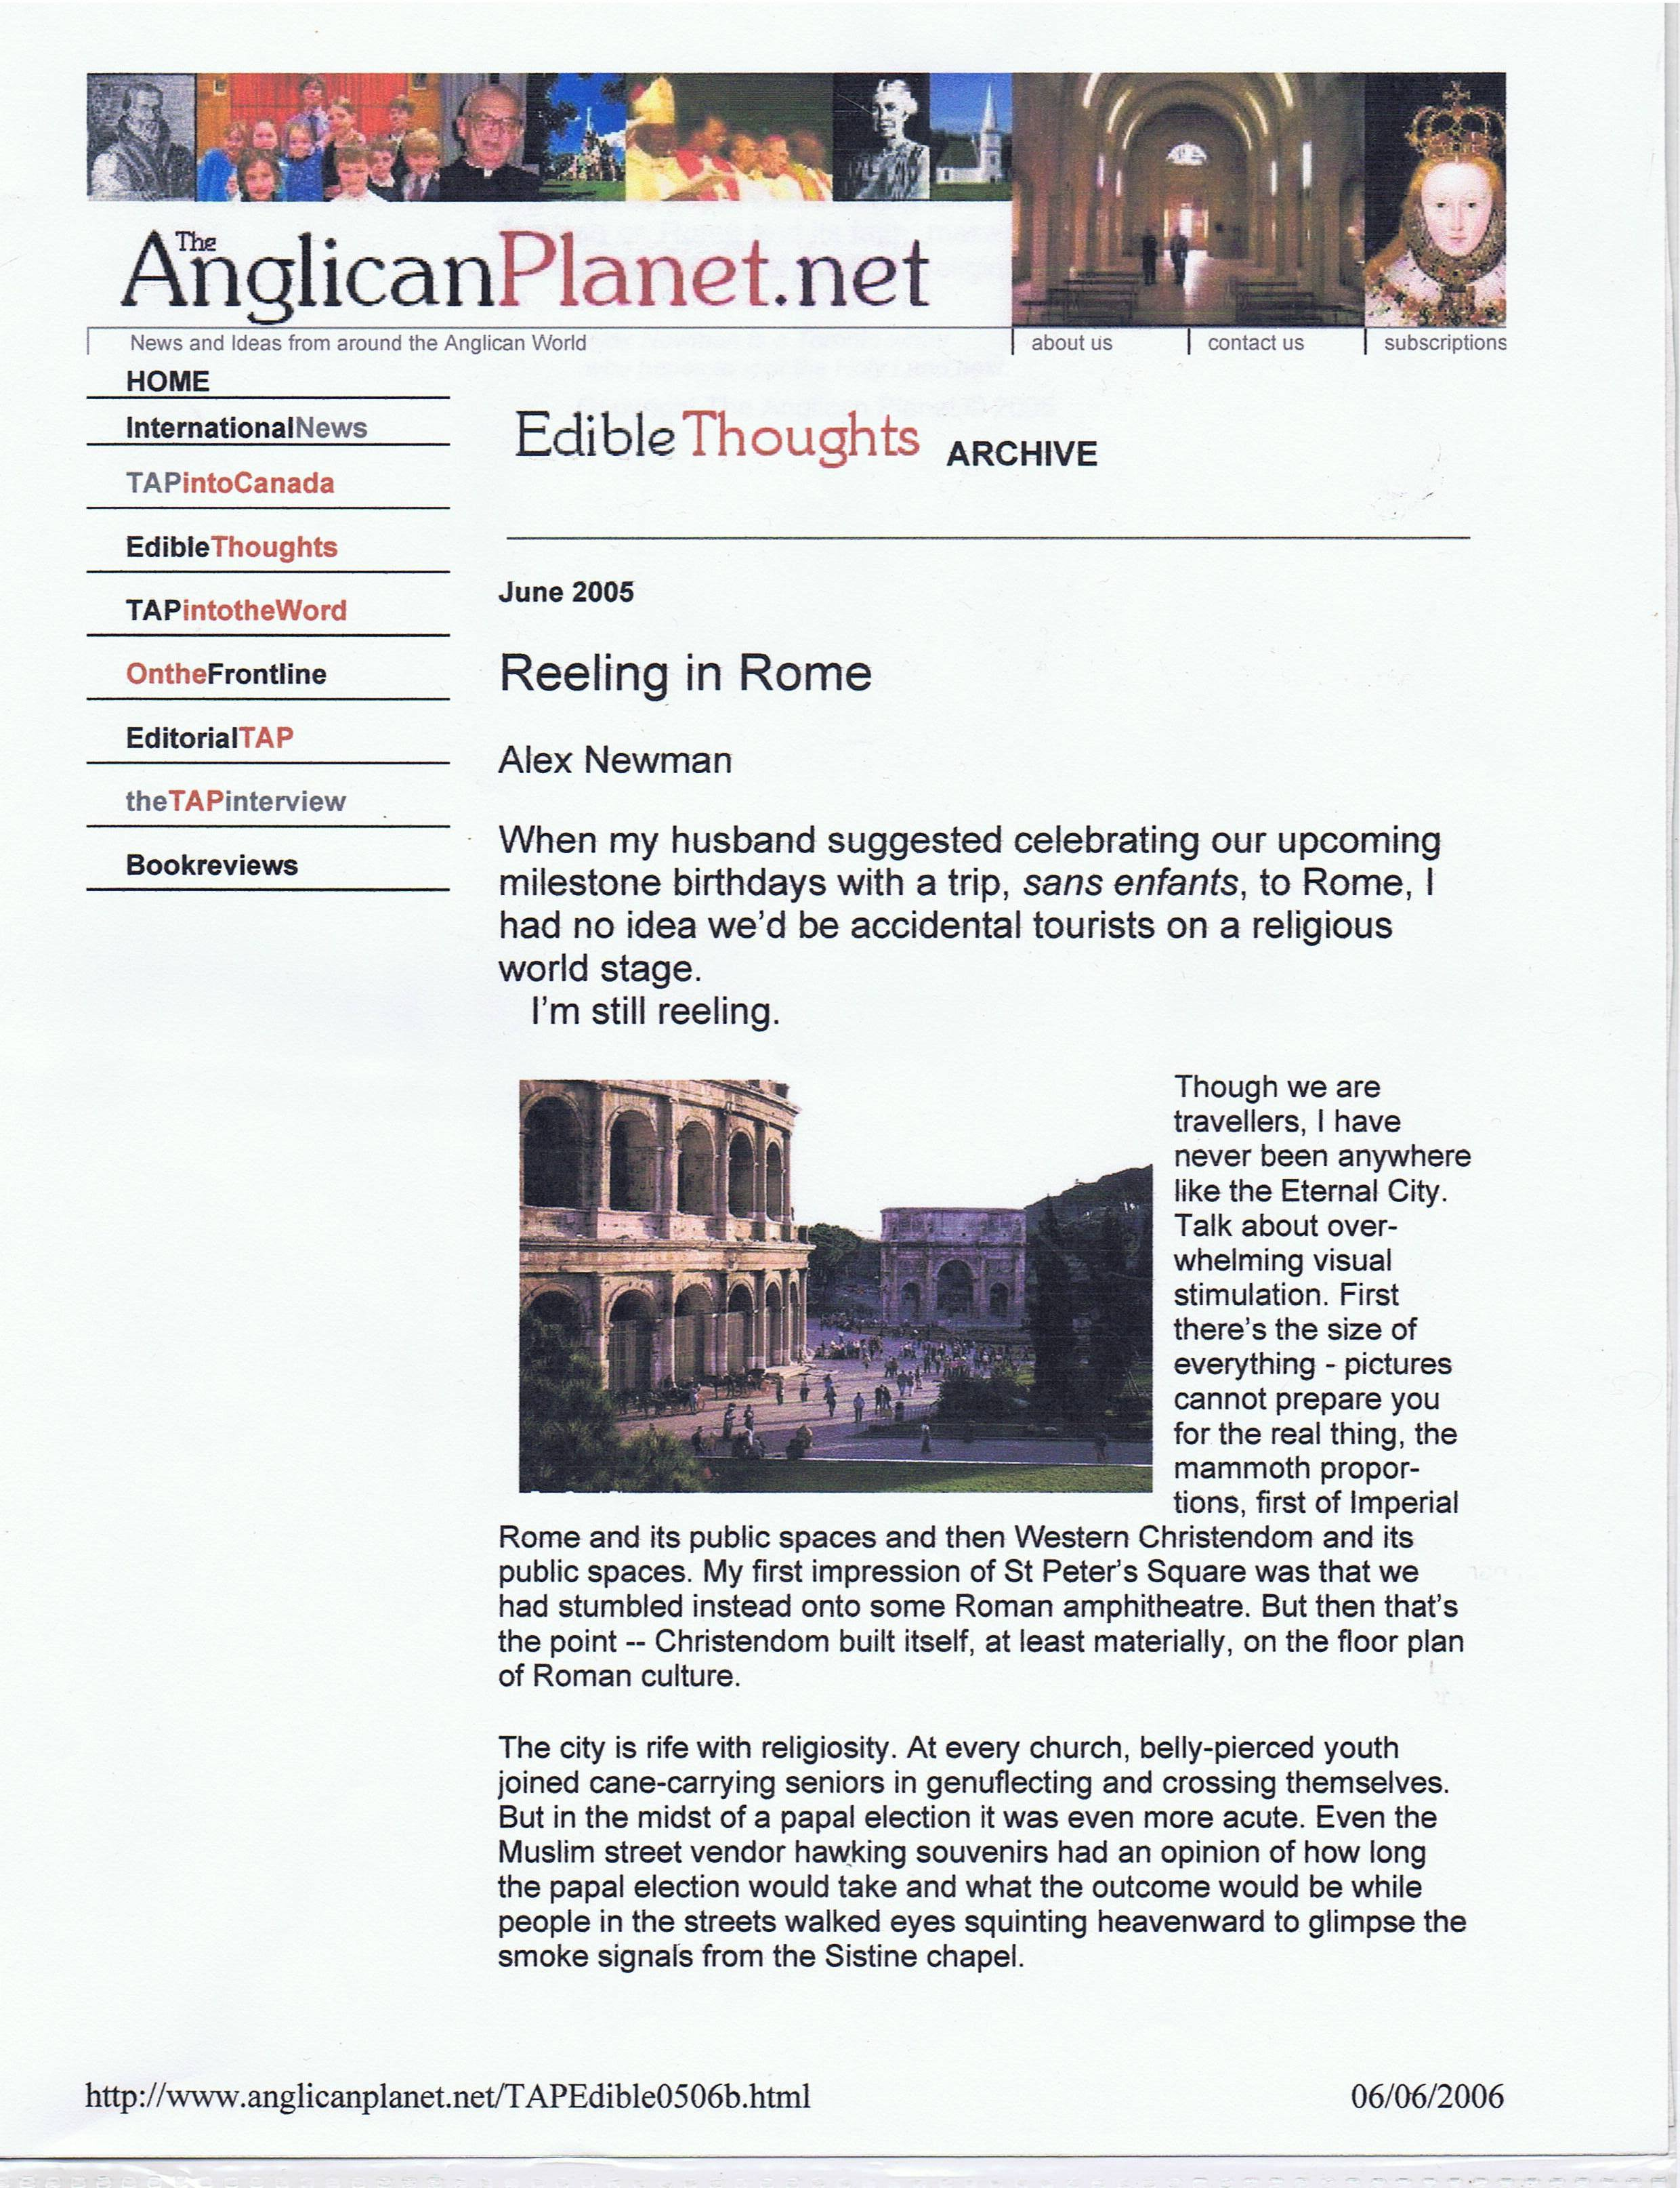 Travel -- Reeling in rome